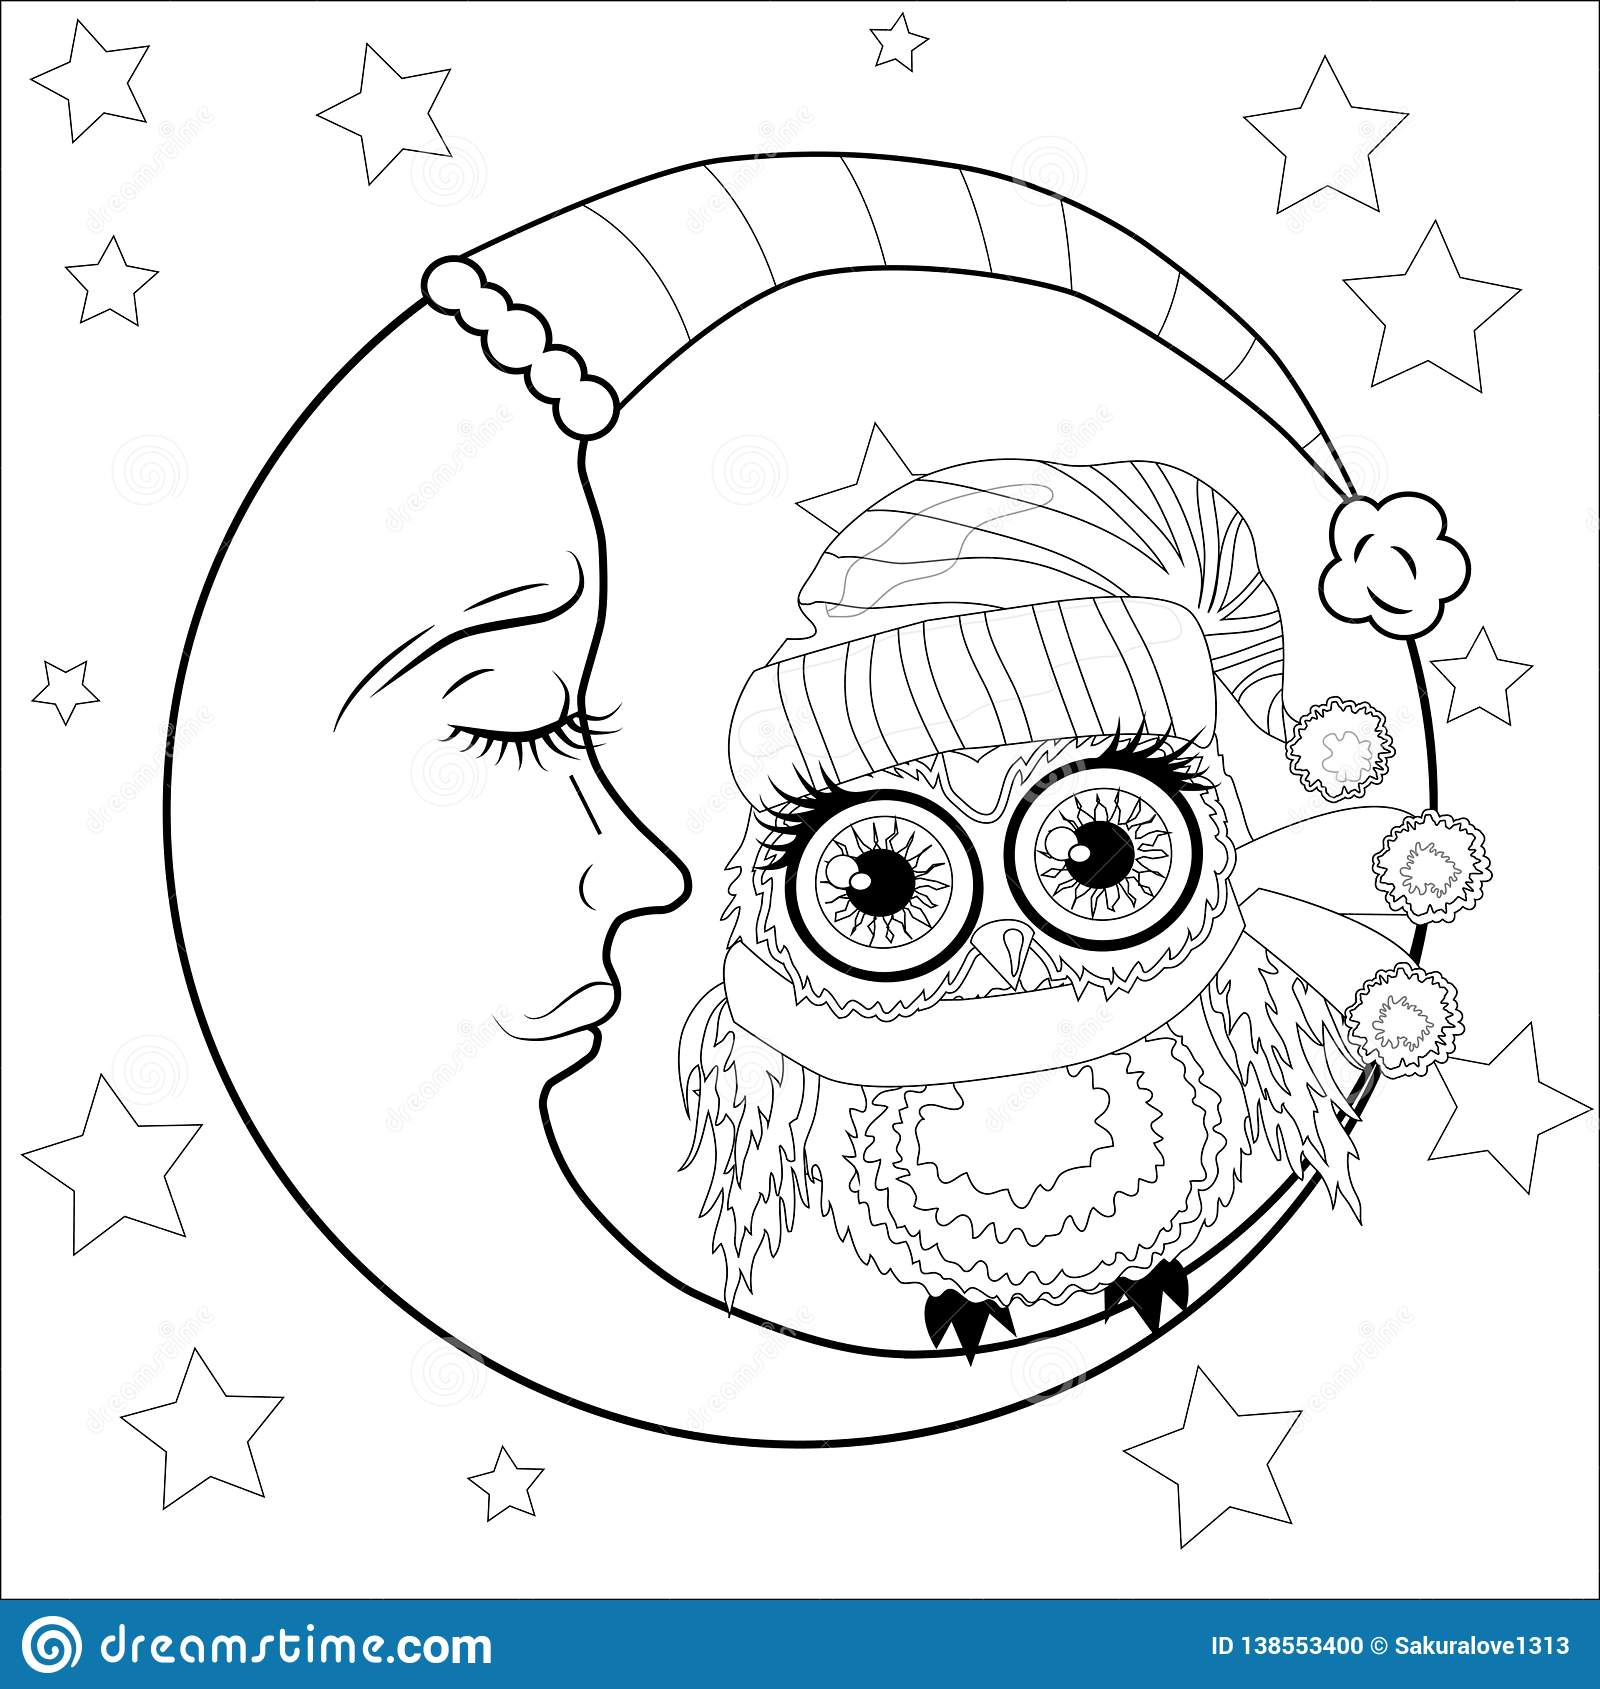 Coloring Book For Adult And Children Coloring Page With